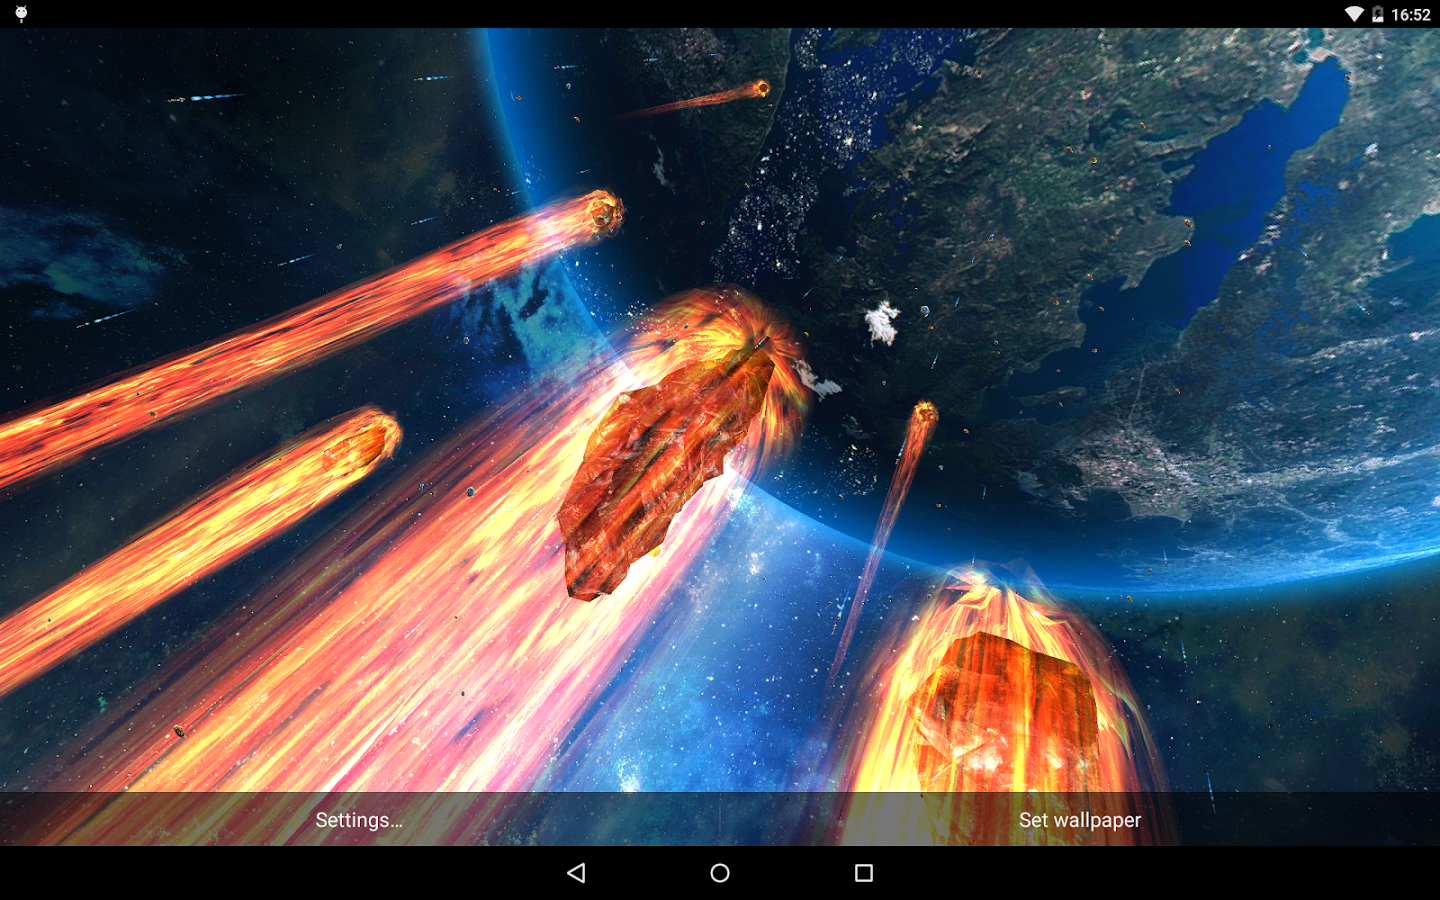 Watch The World End With The New Armageddon Live Wallpaper From